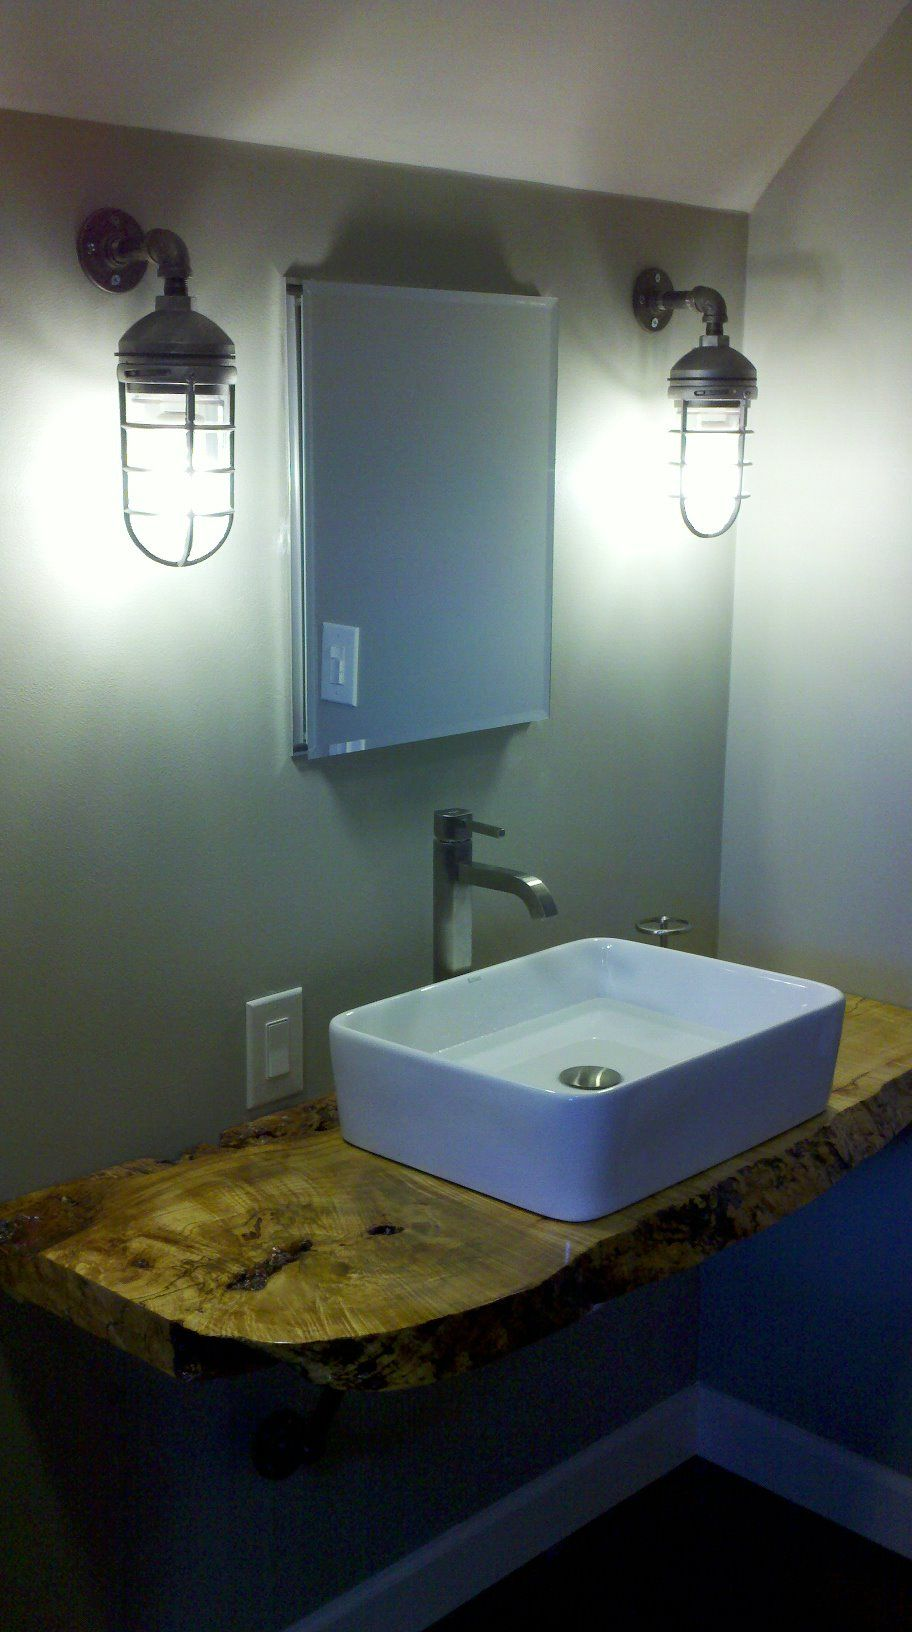 Bathroom inspiration dont love this but there is an idea here bathroom inspiration dont love this but there is an idea here aloadofball Gallery